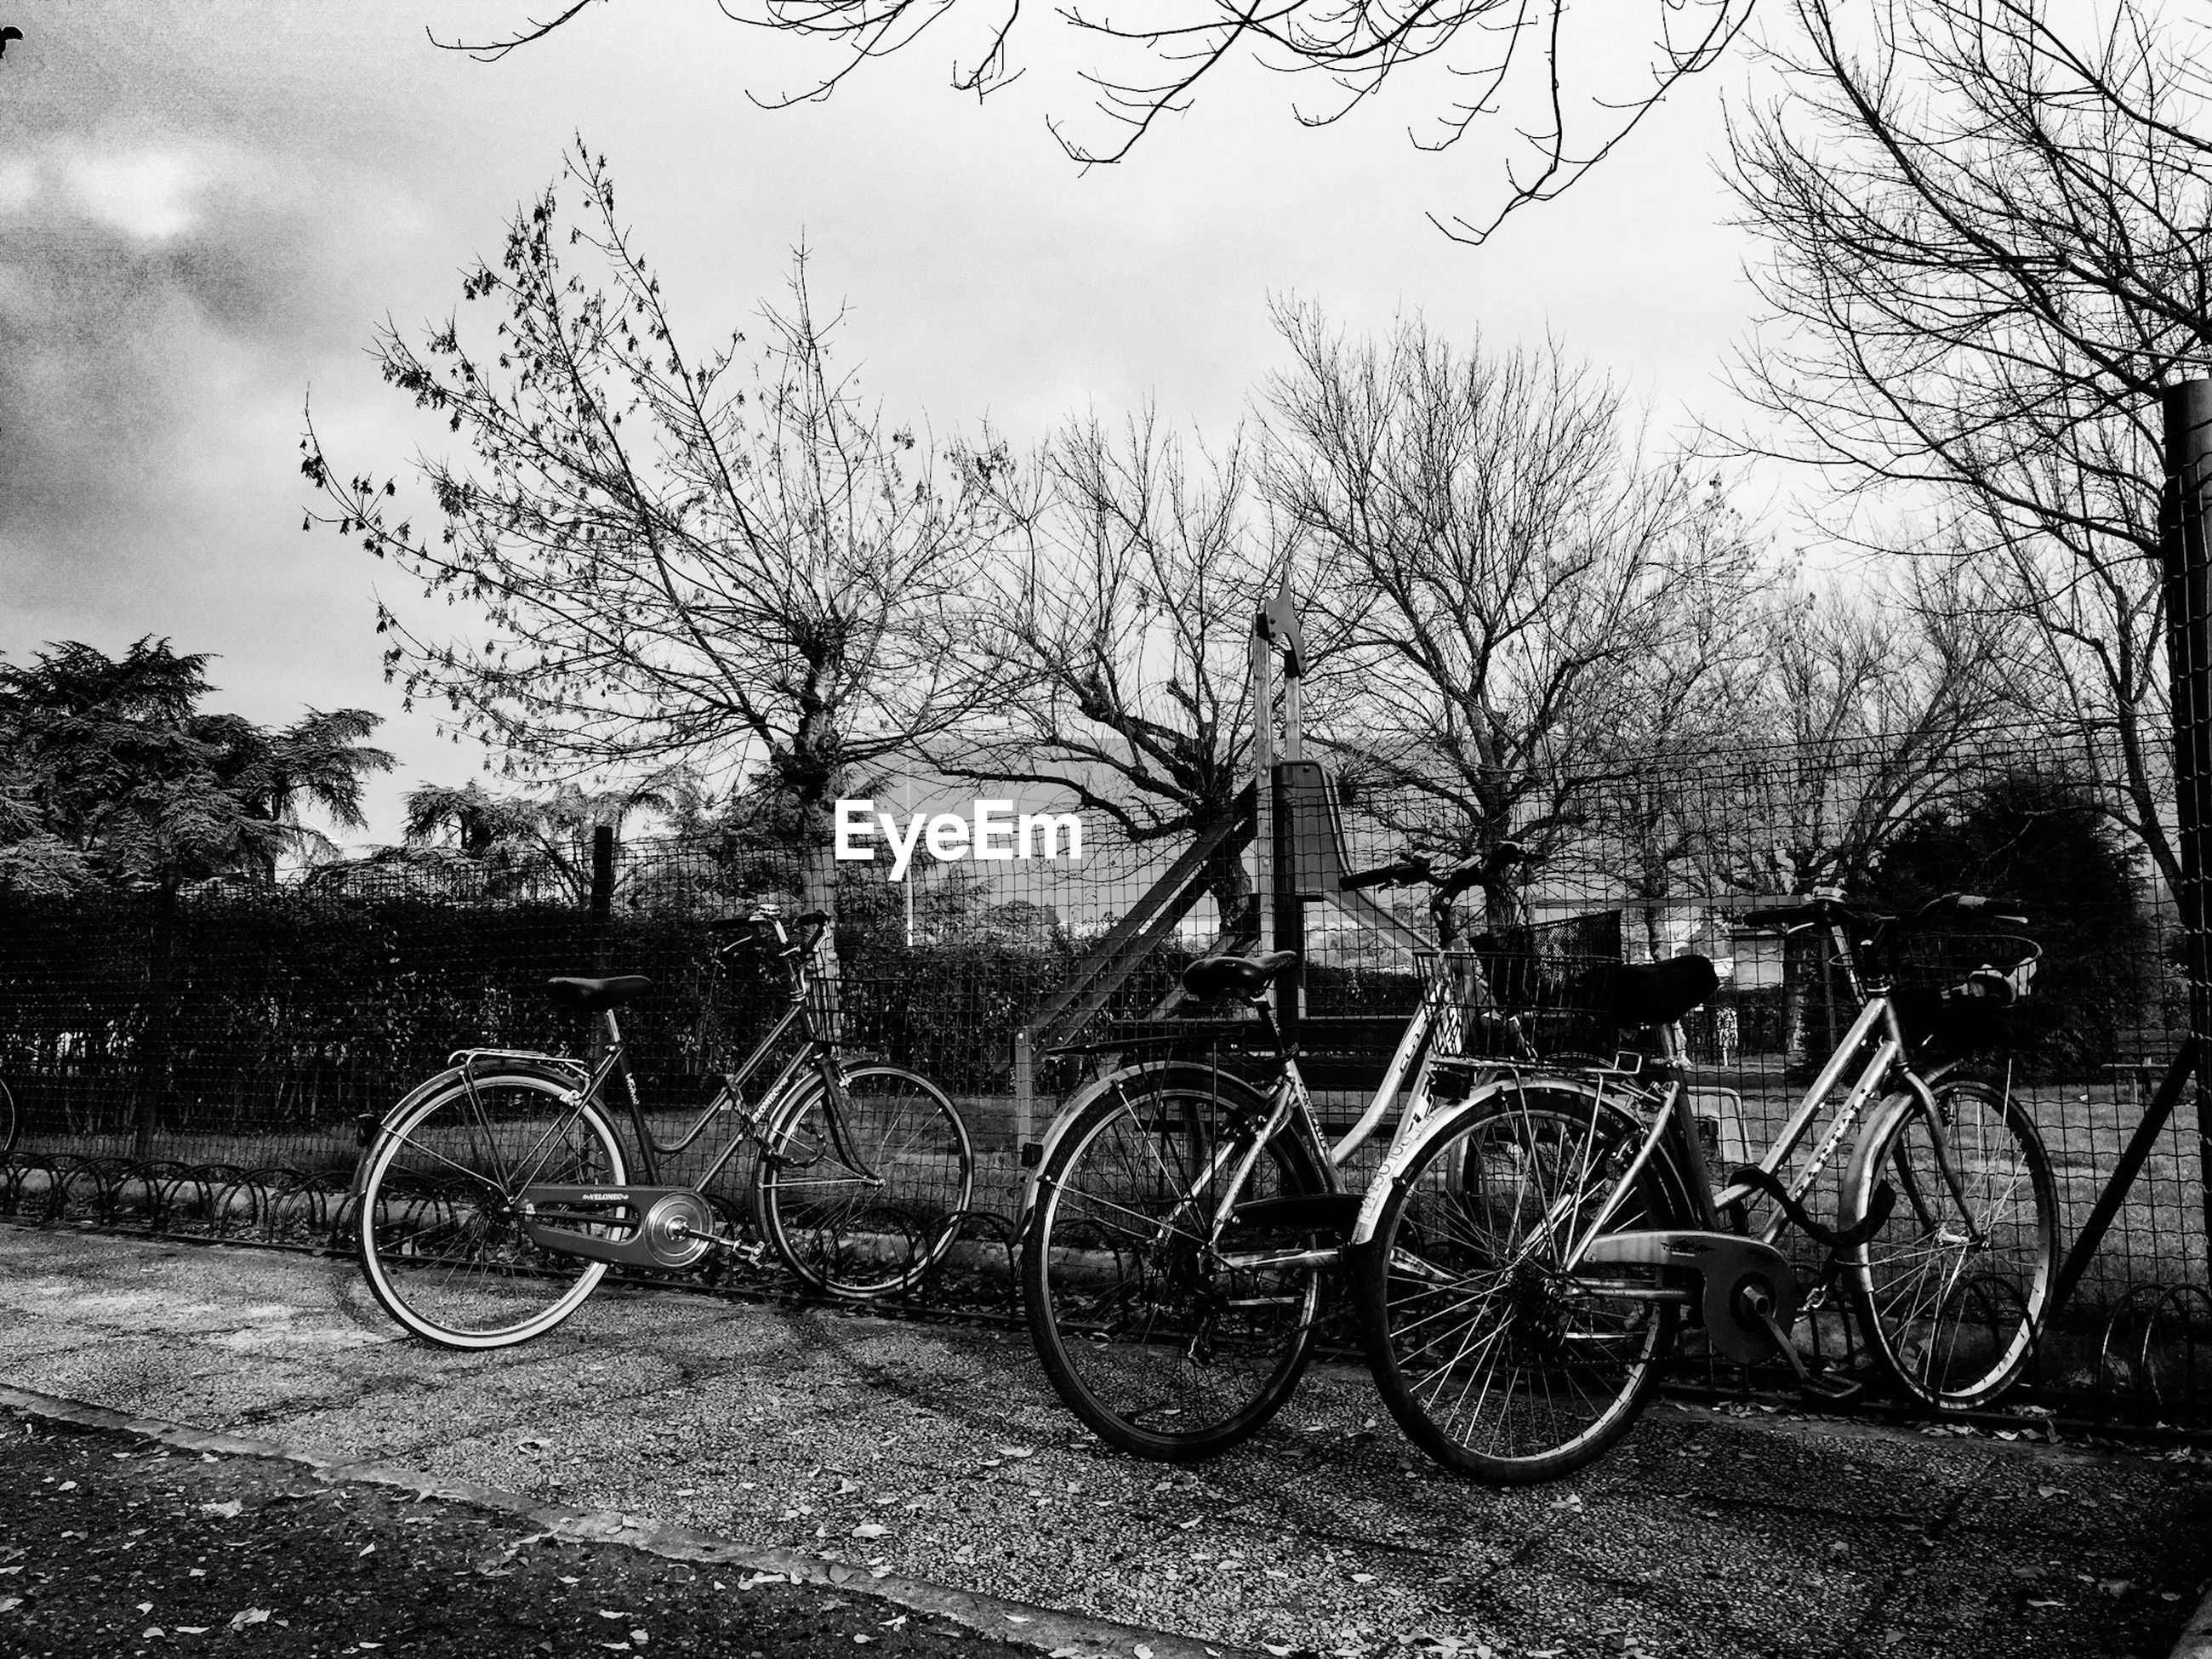 Bicycles parked in rack by fence against trees